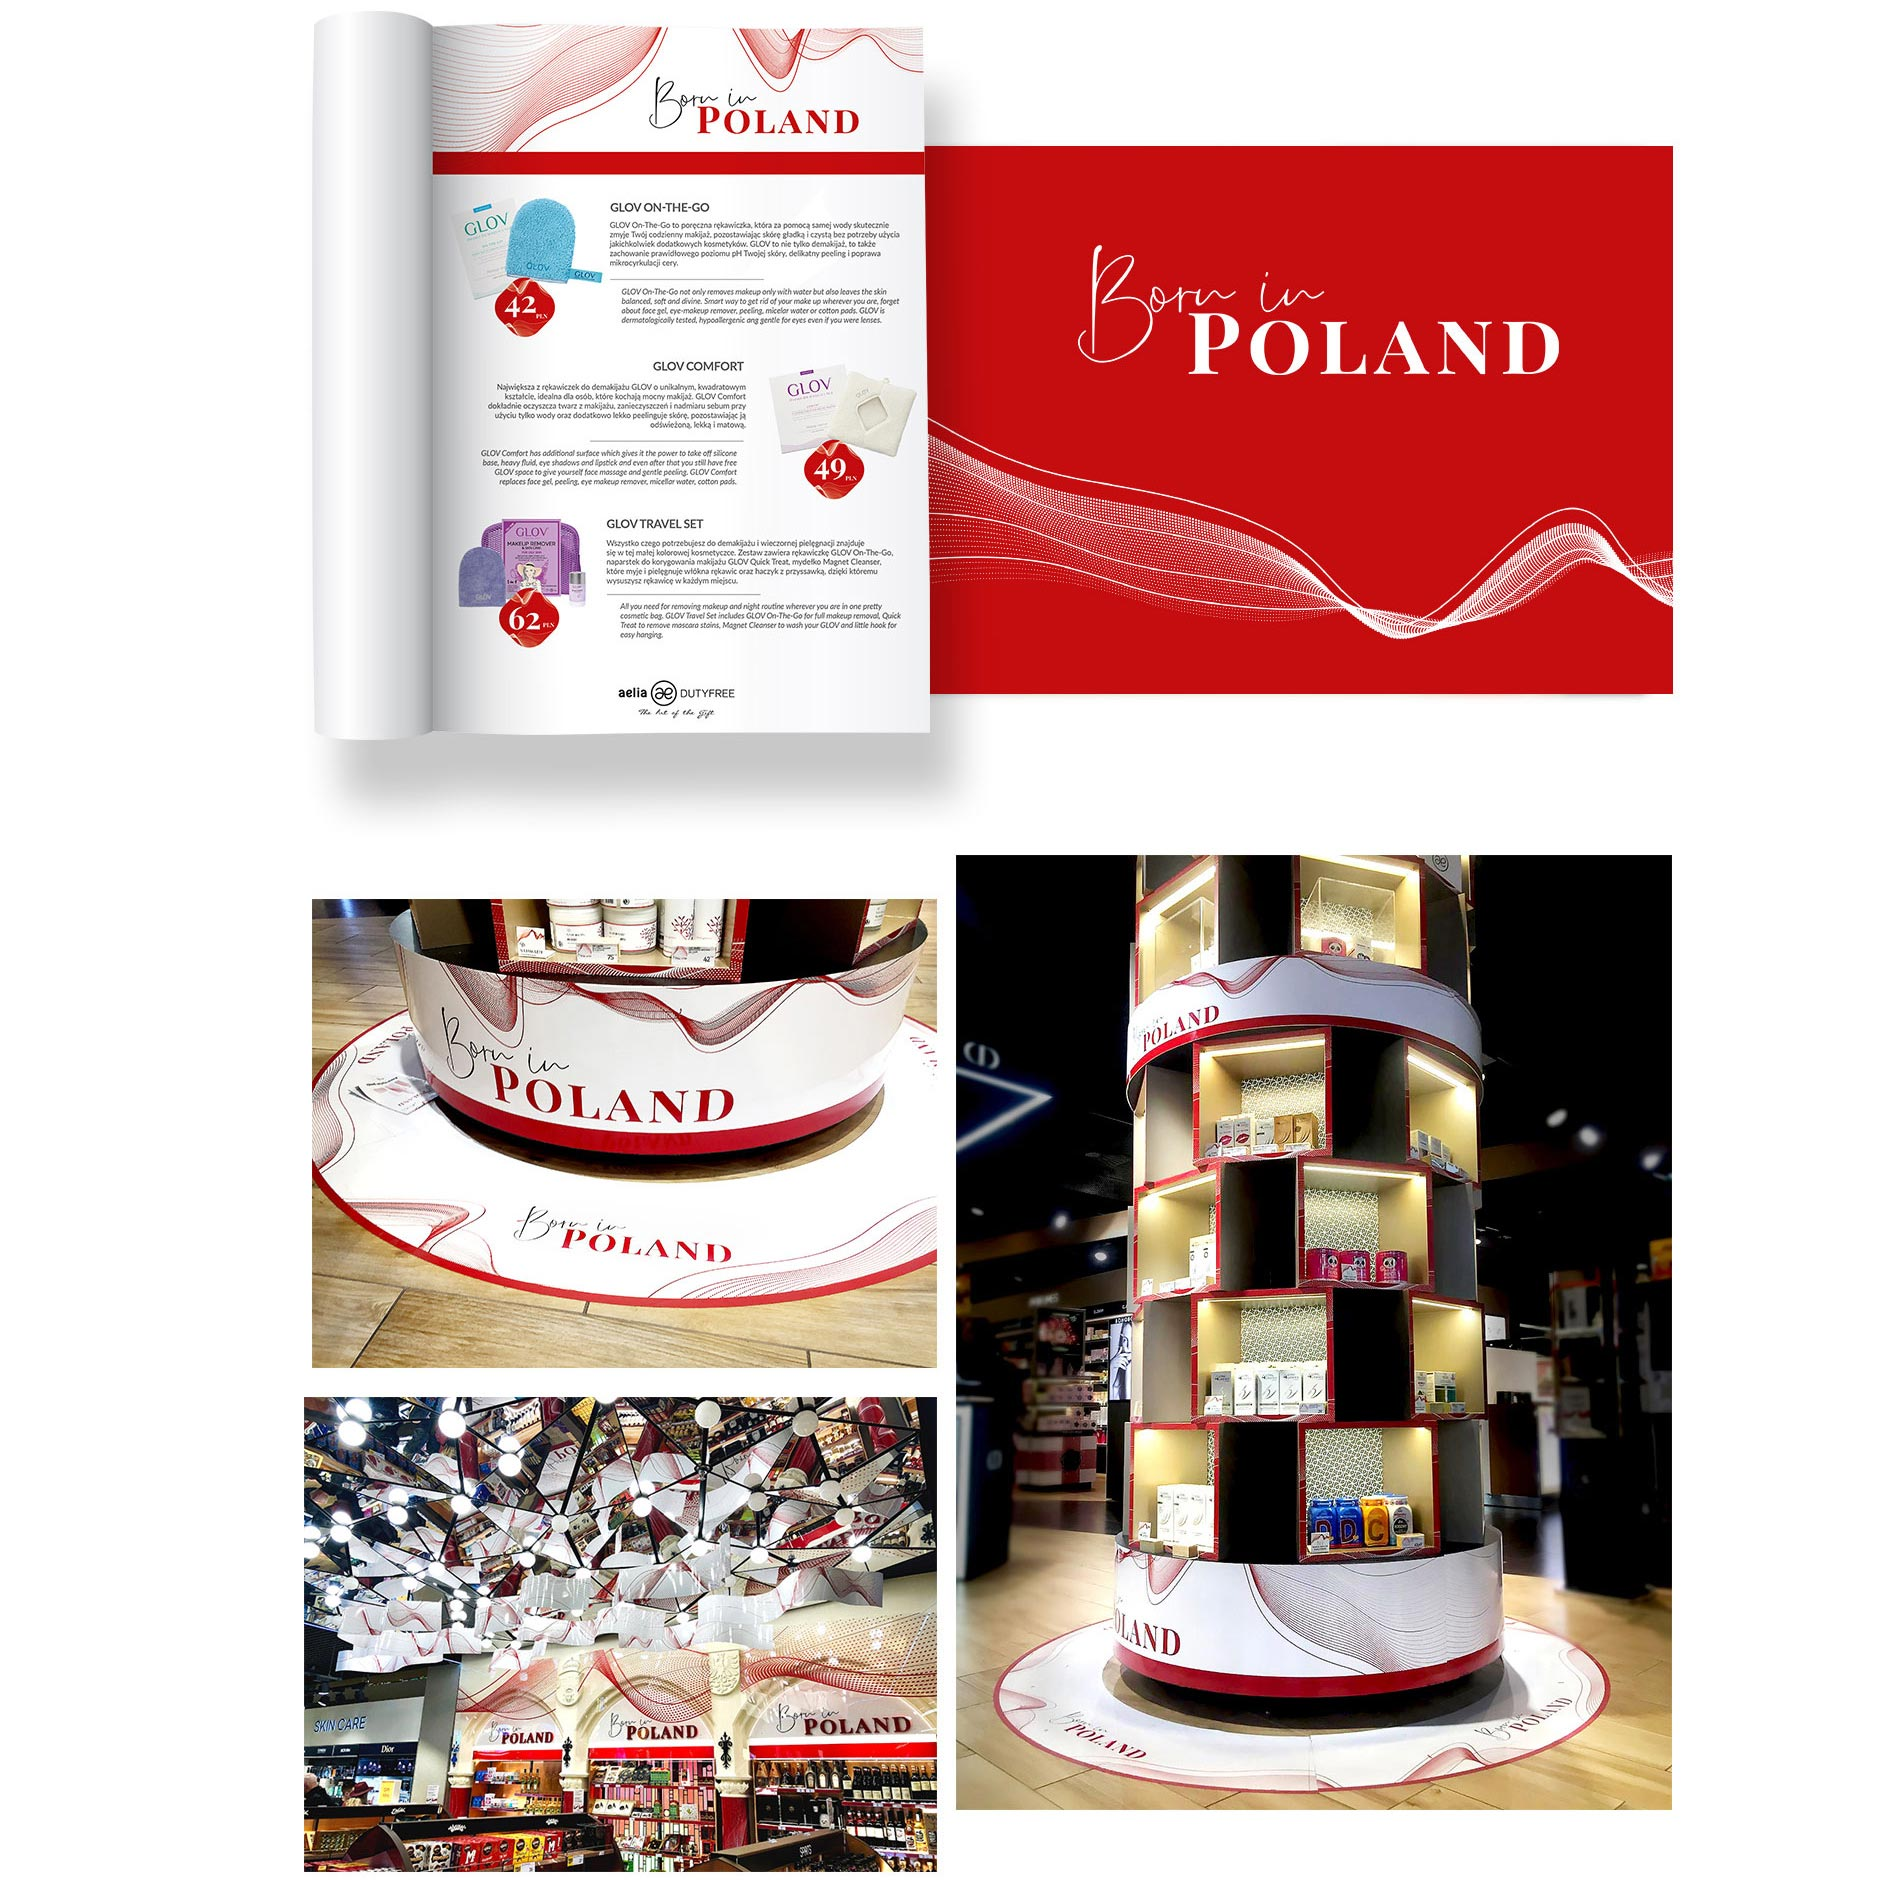 https://peppermint.pl/wp-content/uploads/2019/07/5_PROJEKT_AELIA_BORN_IN_POLAND.jpg